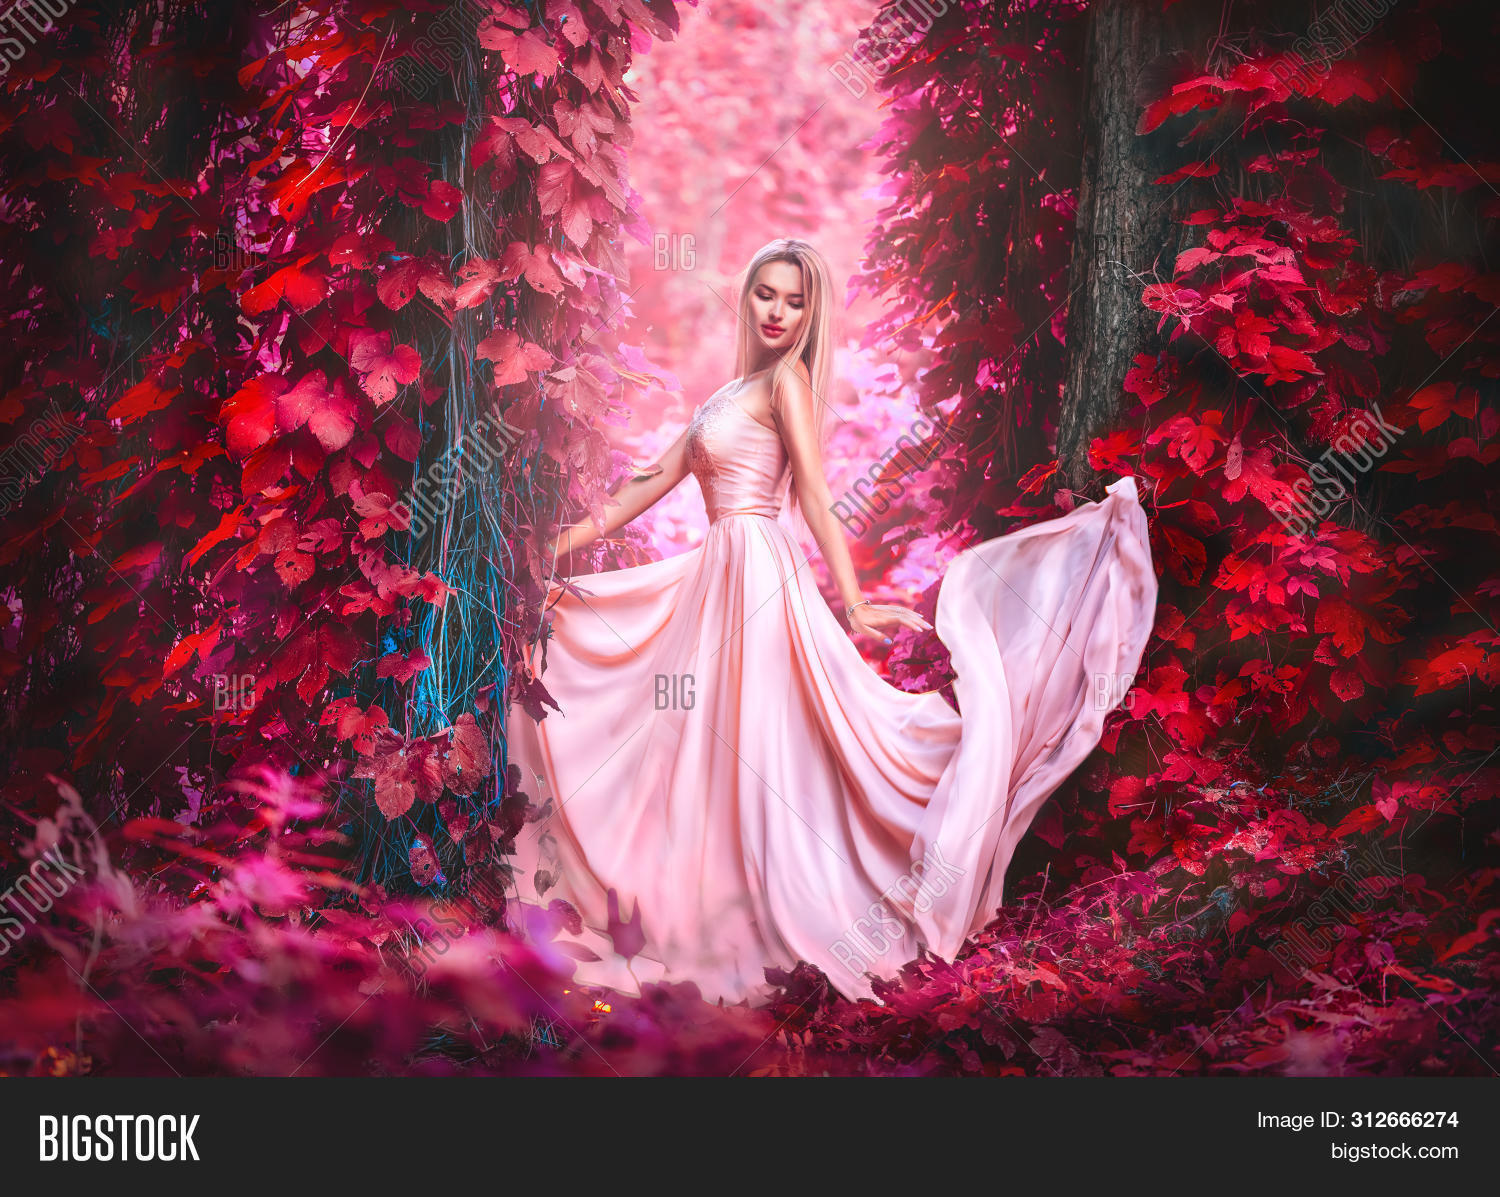 autumn,beautiful,beauty,blonde,bridal,bride,chiffon,cloth,color,dancing,dress,elegant,fairy,fantasy,fashion,flowing,fluttering,flying,forest,full length,garden,girl,glamour,gown,hair,holiday,lady,long,lush,magic,make-up,marriage,model,nature,outdoors,park,pink,princess,purple,red,romantic,satin,sexy,silk,tree,trees,wedding,white,woman,young